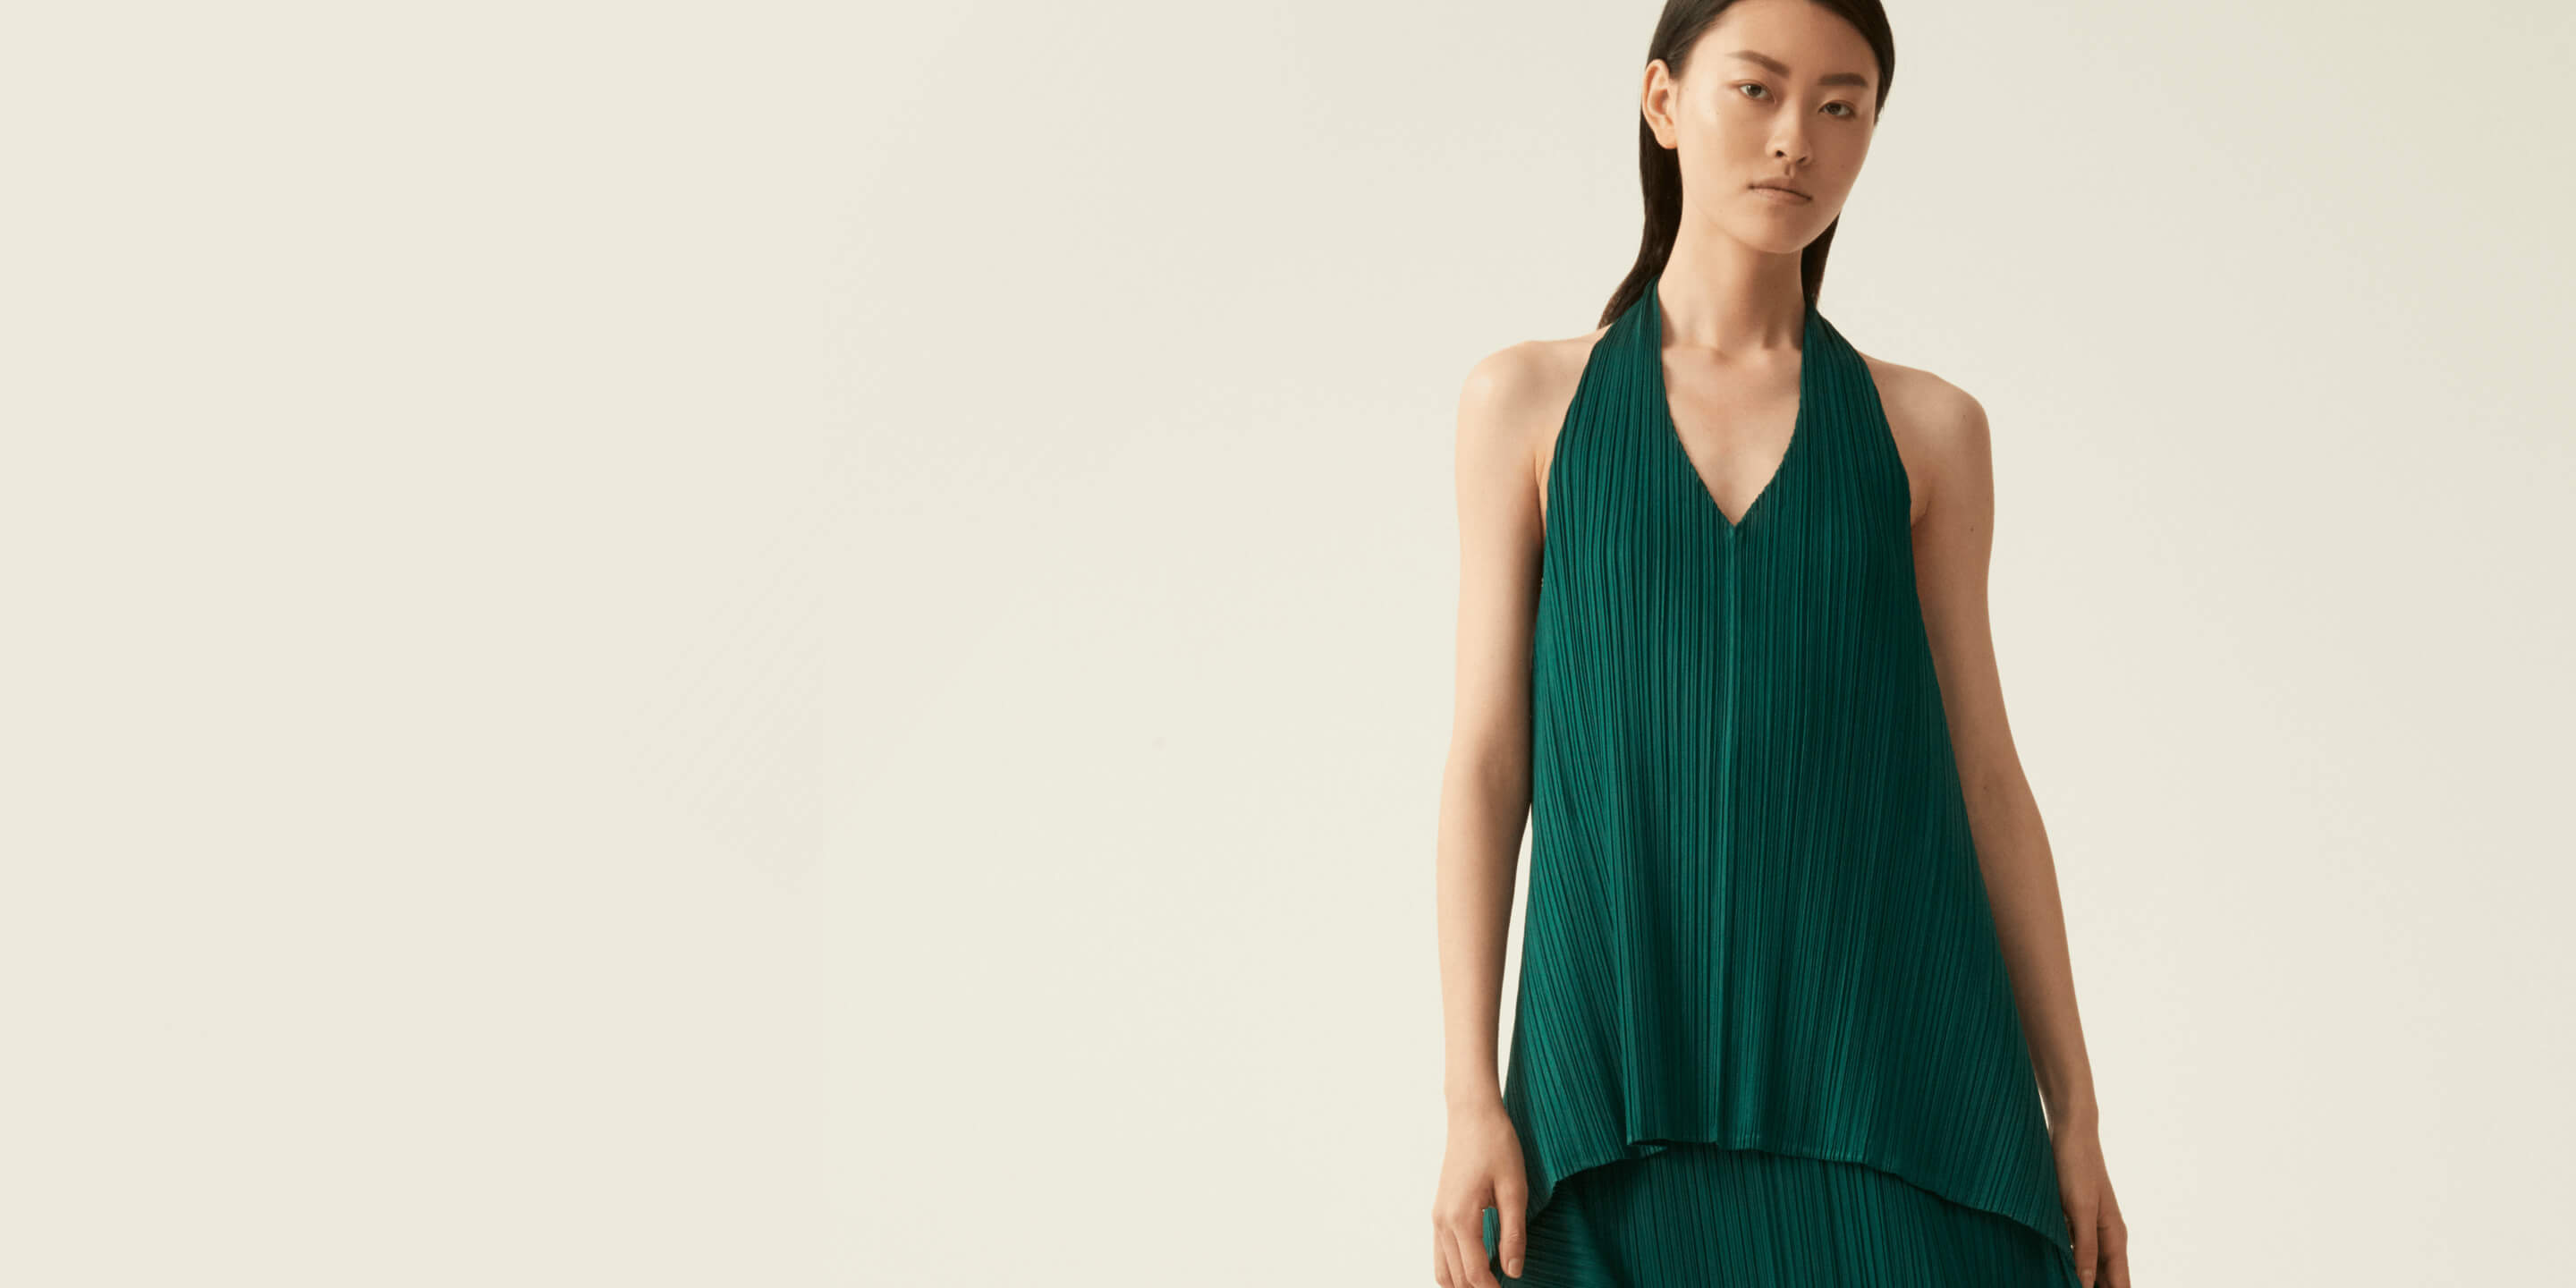 New store for Issey Miyake on Shopify